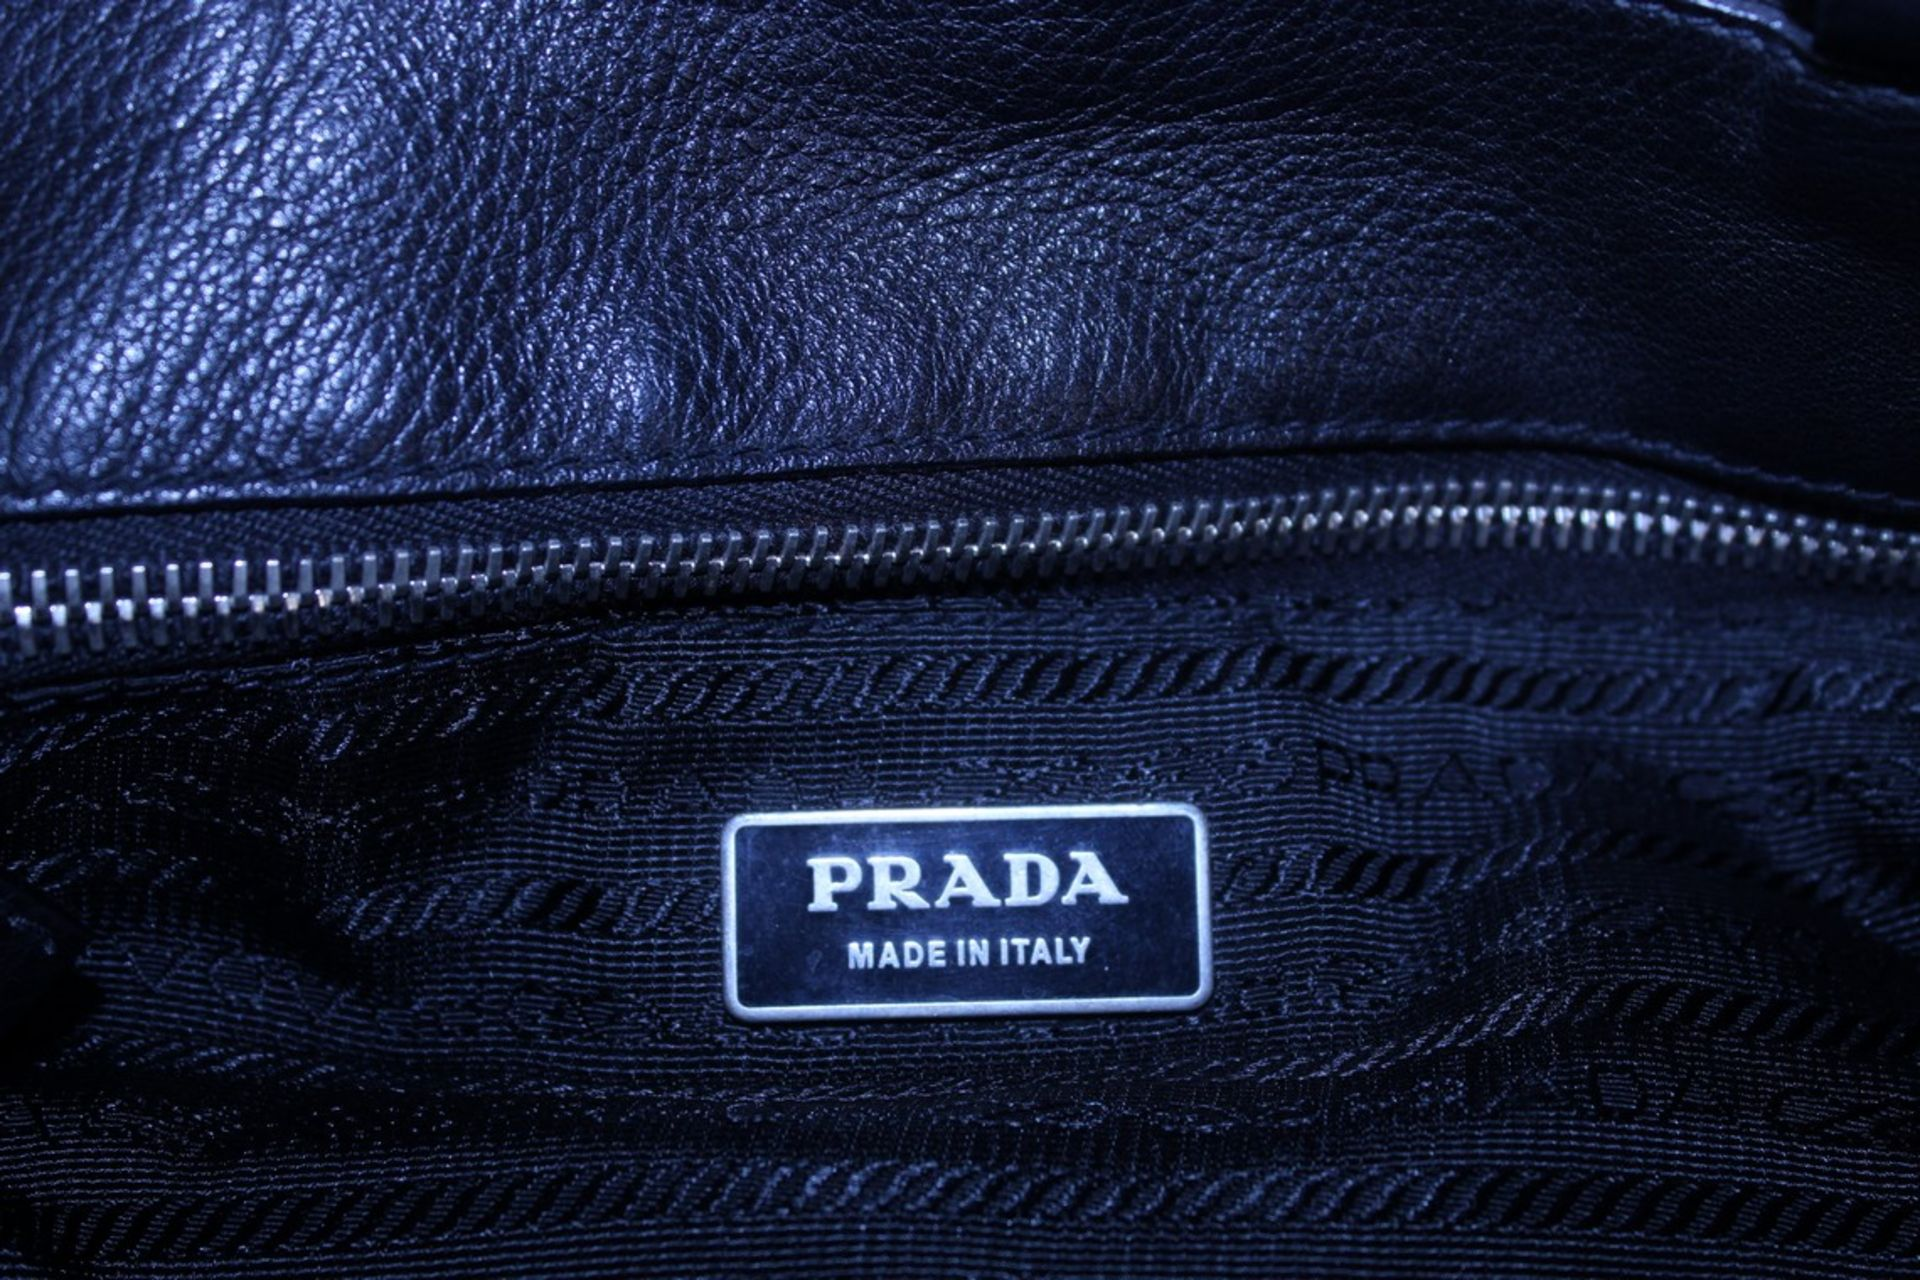 RRP £1200 Prada Side Pocket Tote Shoulder Bag In Black Small Grained Leather With Black Leather - Image 3 of 4